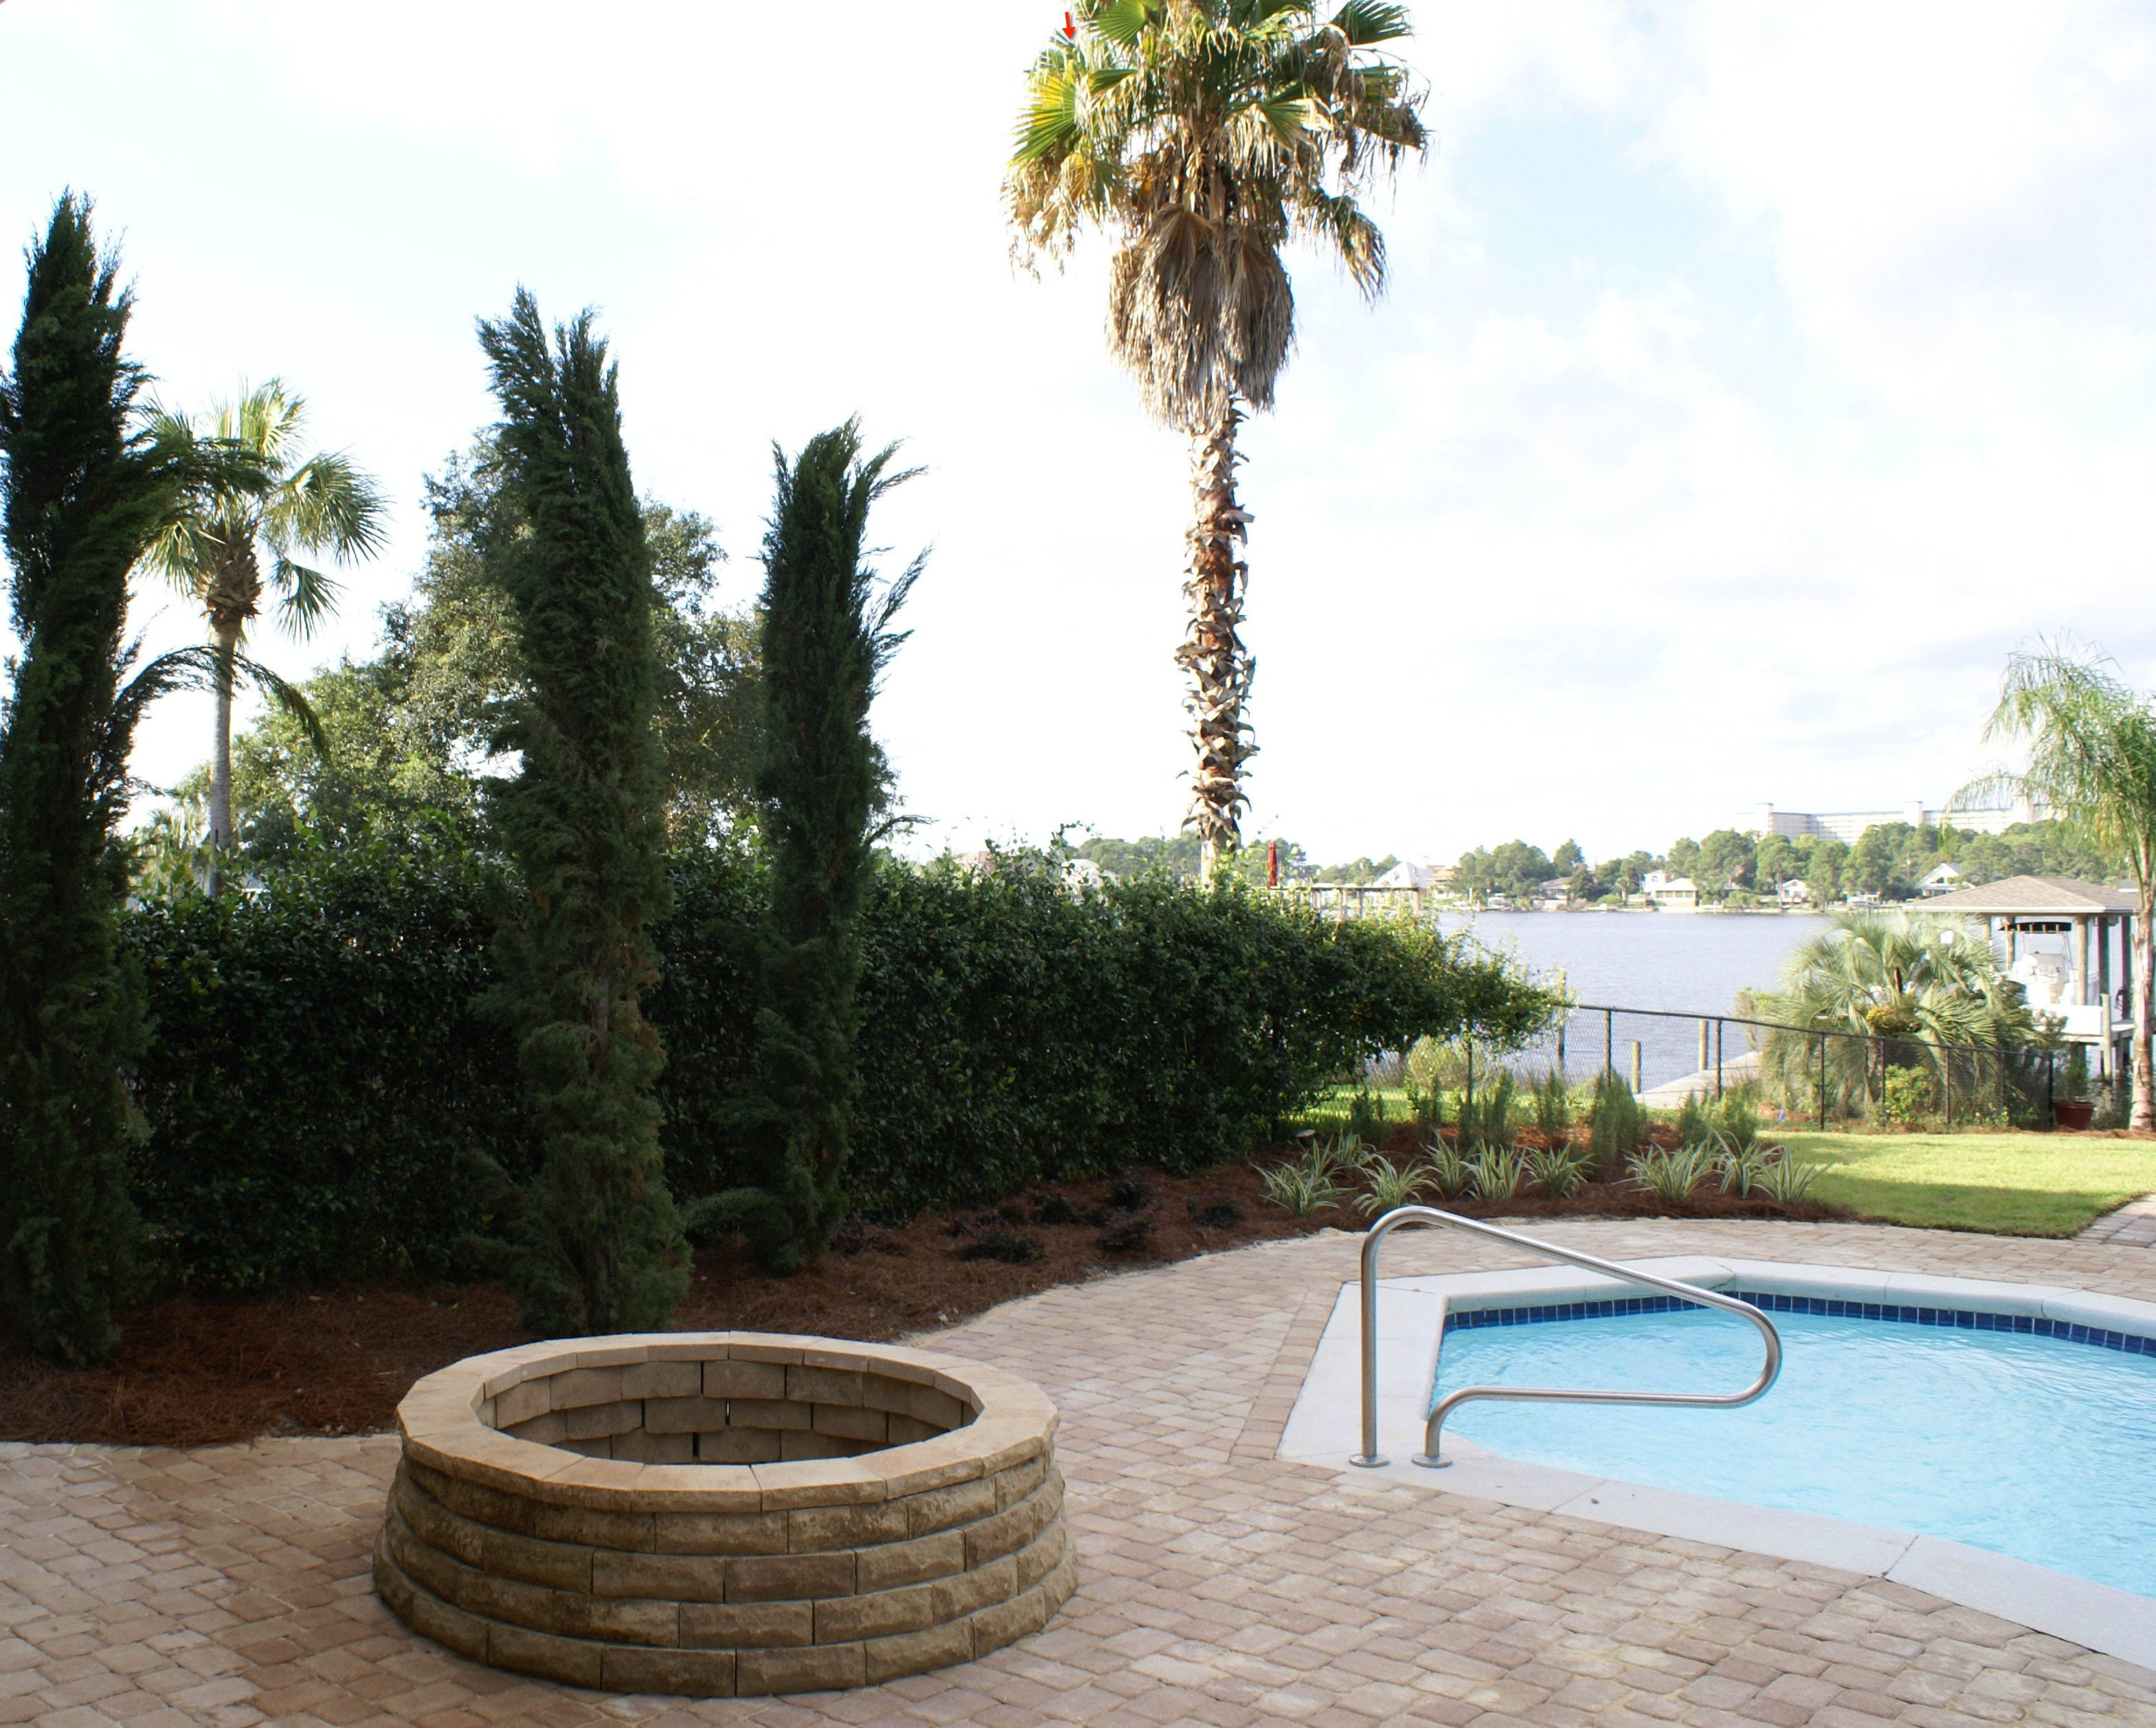 We help design residential hardscape plans in Florida for stunning estates